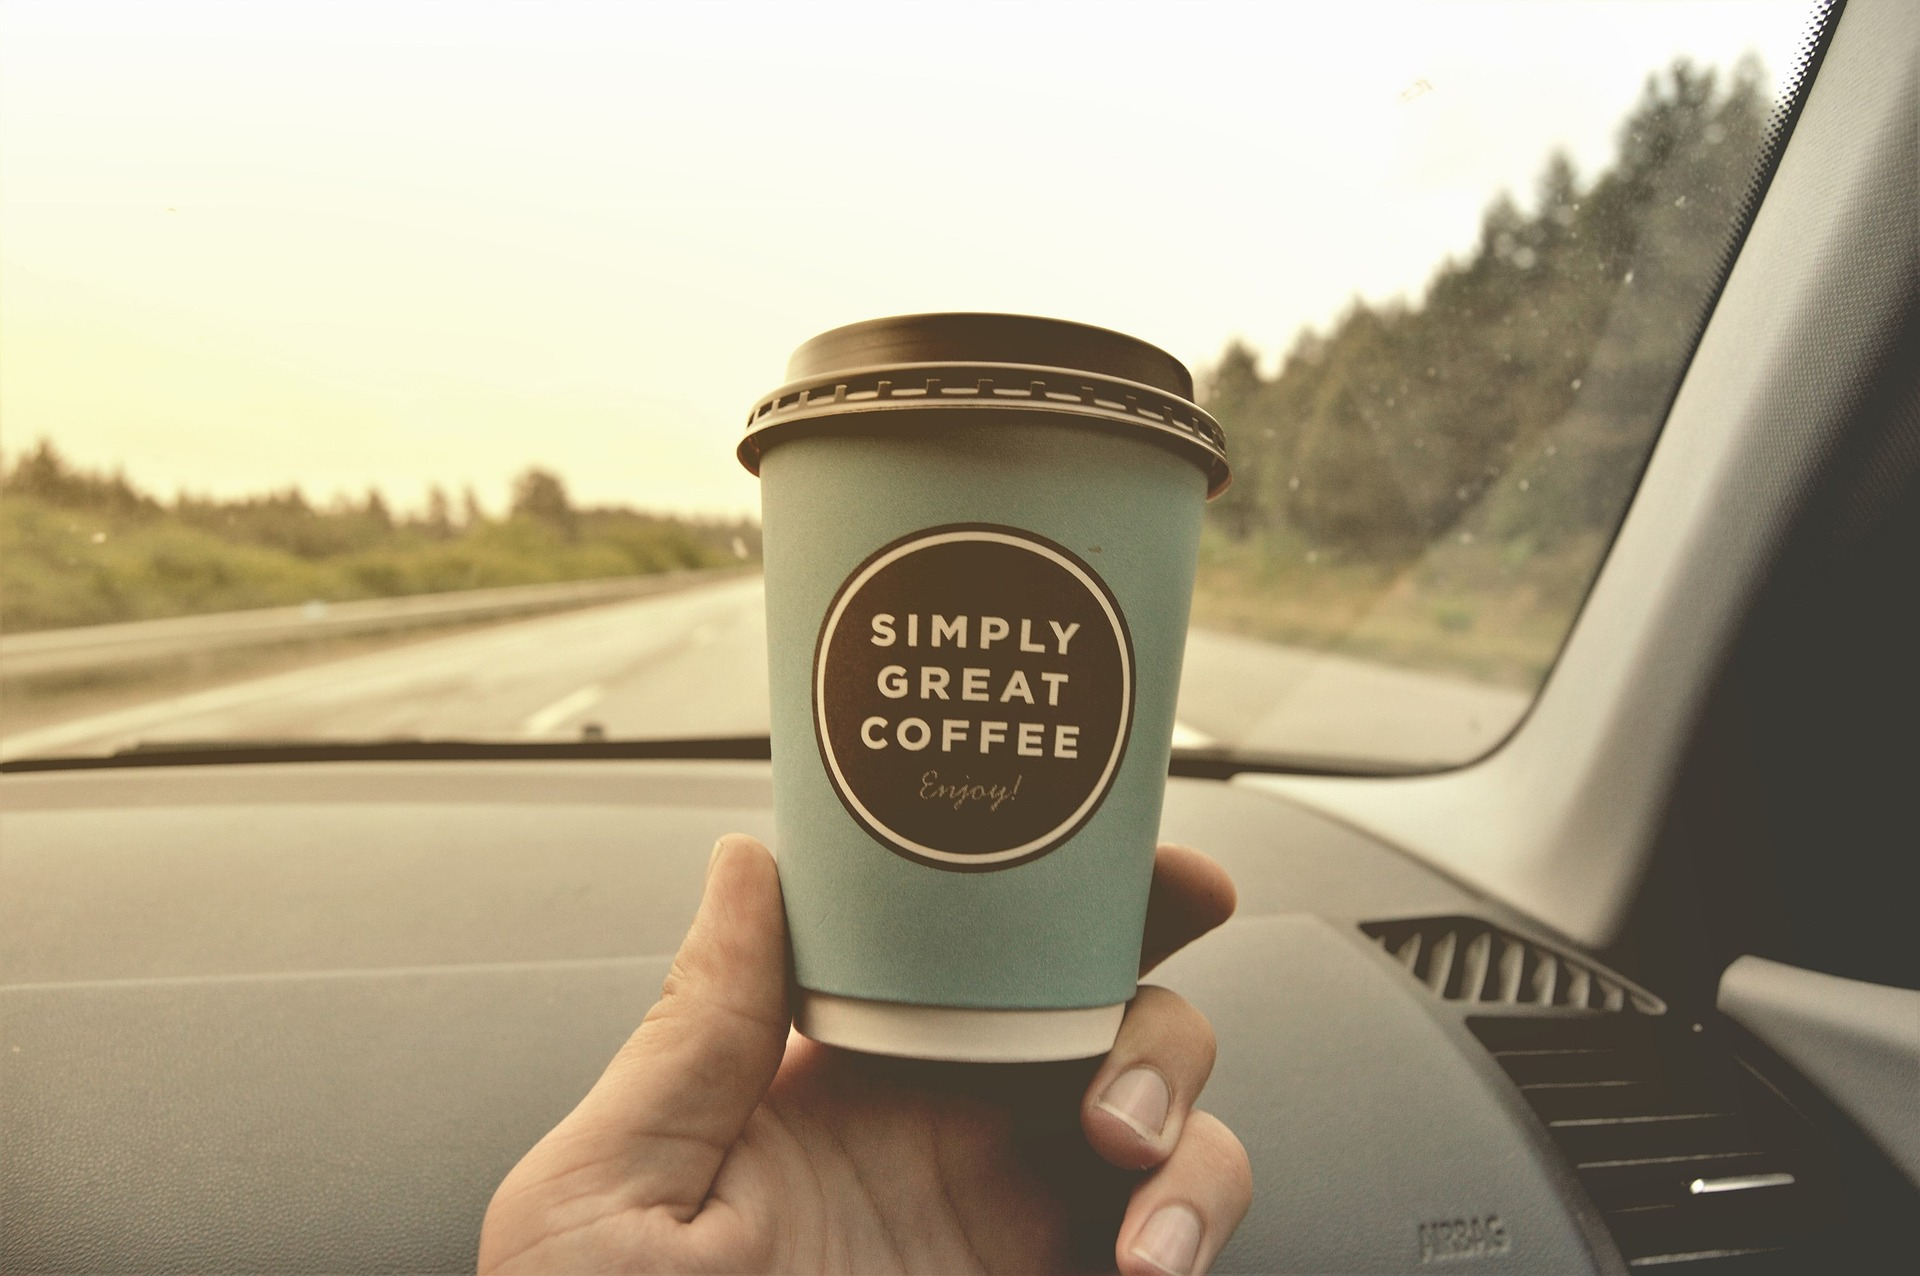 Coffee is no replacement for good sleep!